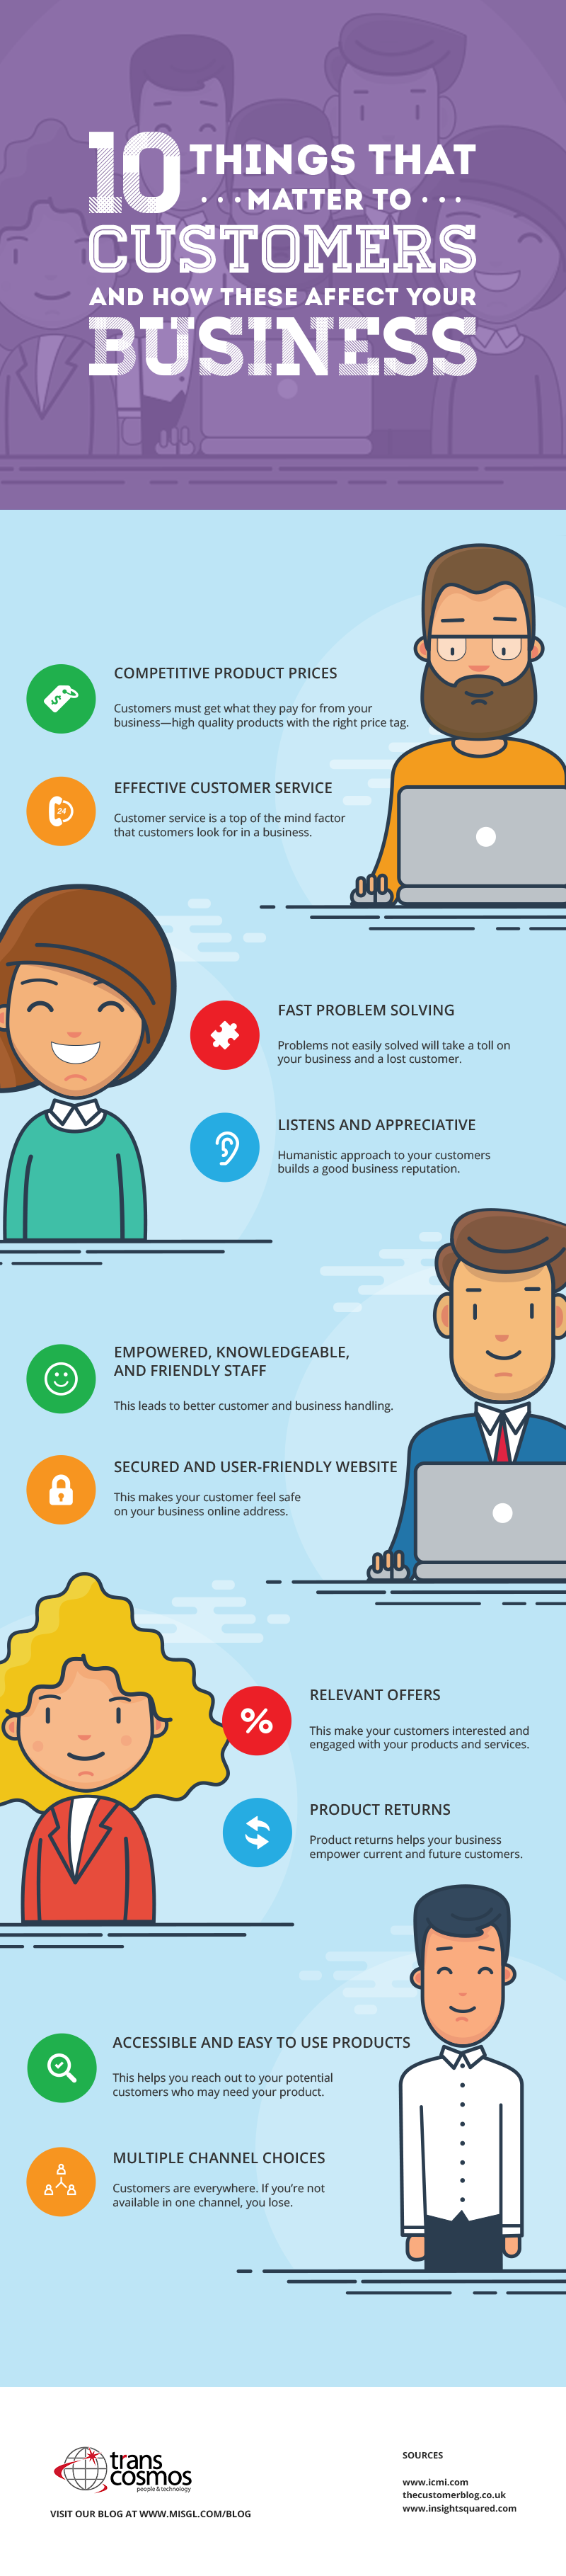 10 Things That Matter To Customers And How These Affect Your Business - Infographic